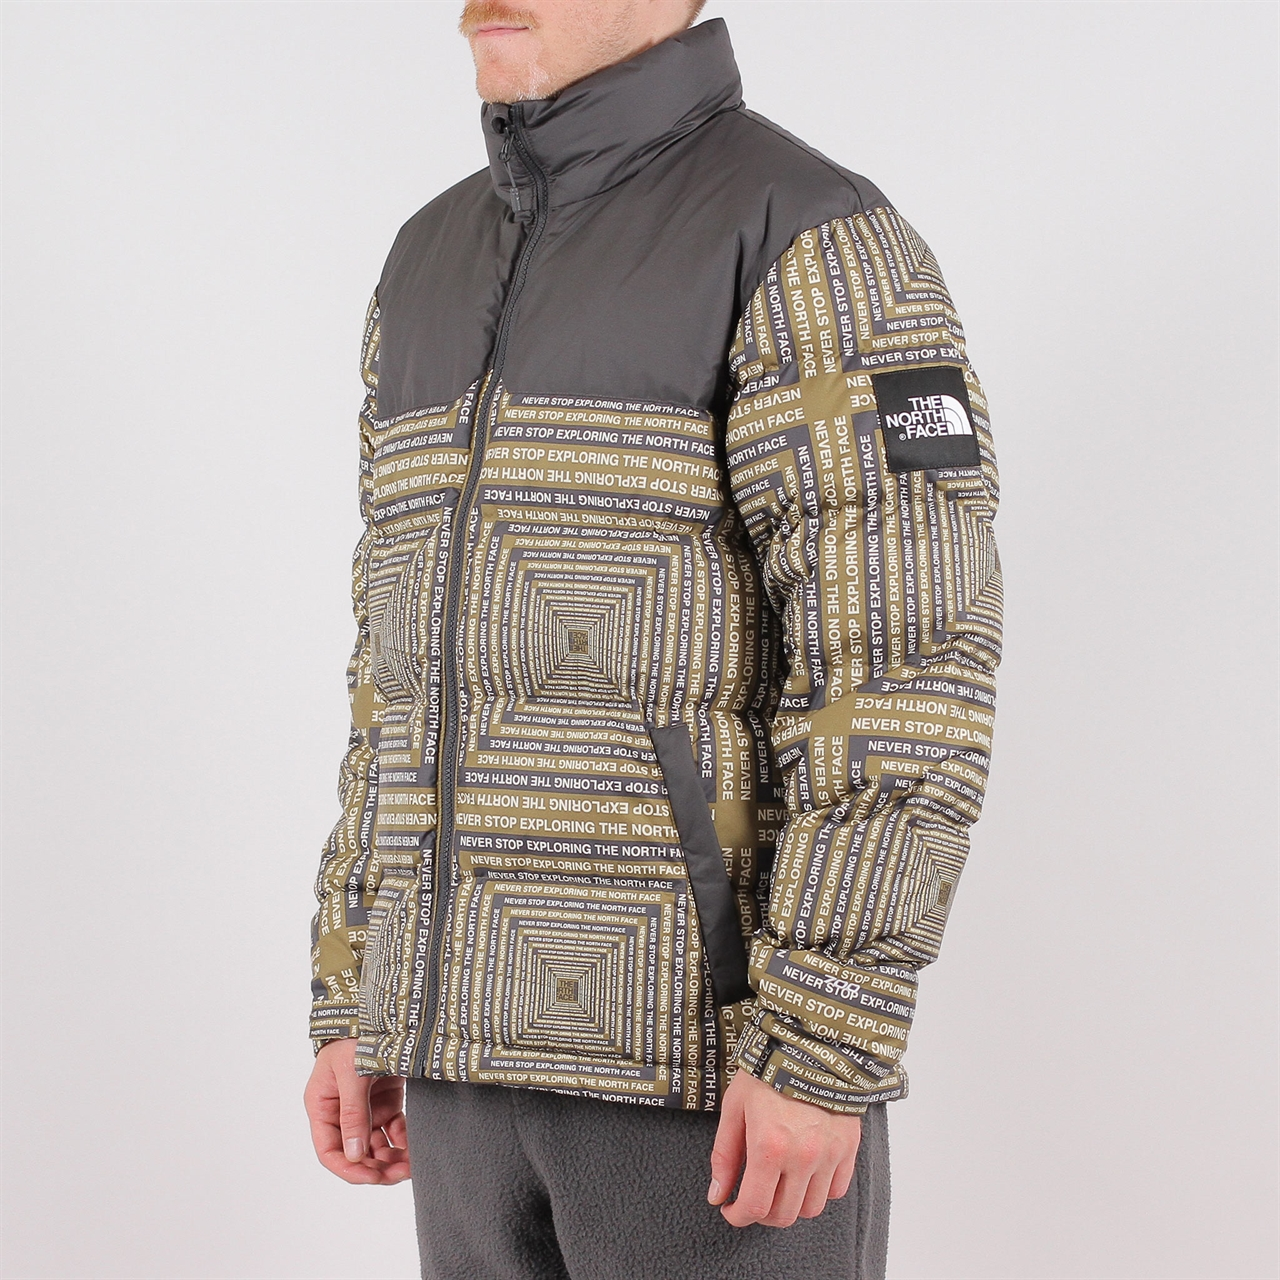 be8d8eb5da ... Leopard Yellow Genesis P – Grants 1856 The North Face Black Box Jacket  - 1992 Nuptse 1992 Nuptse Jacket Related  The North Face · New arrivals ·  Jackets ...